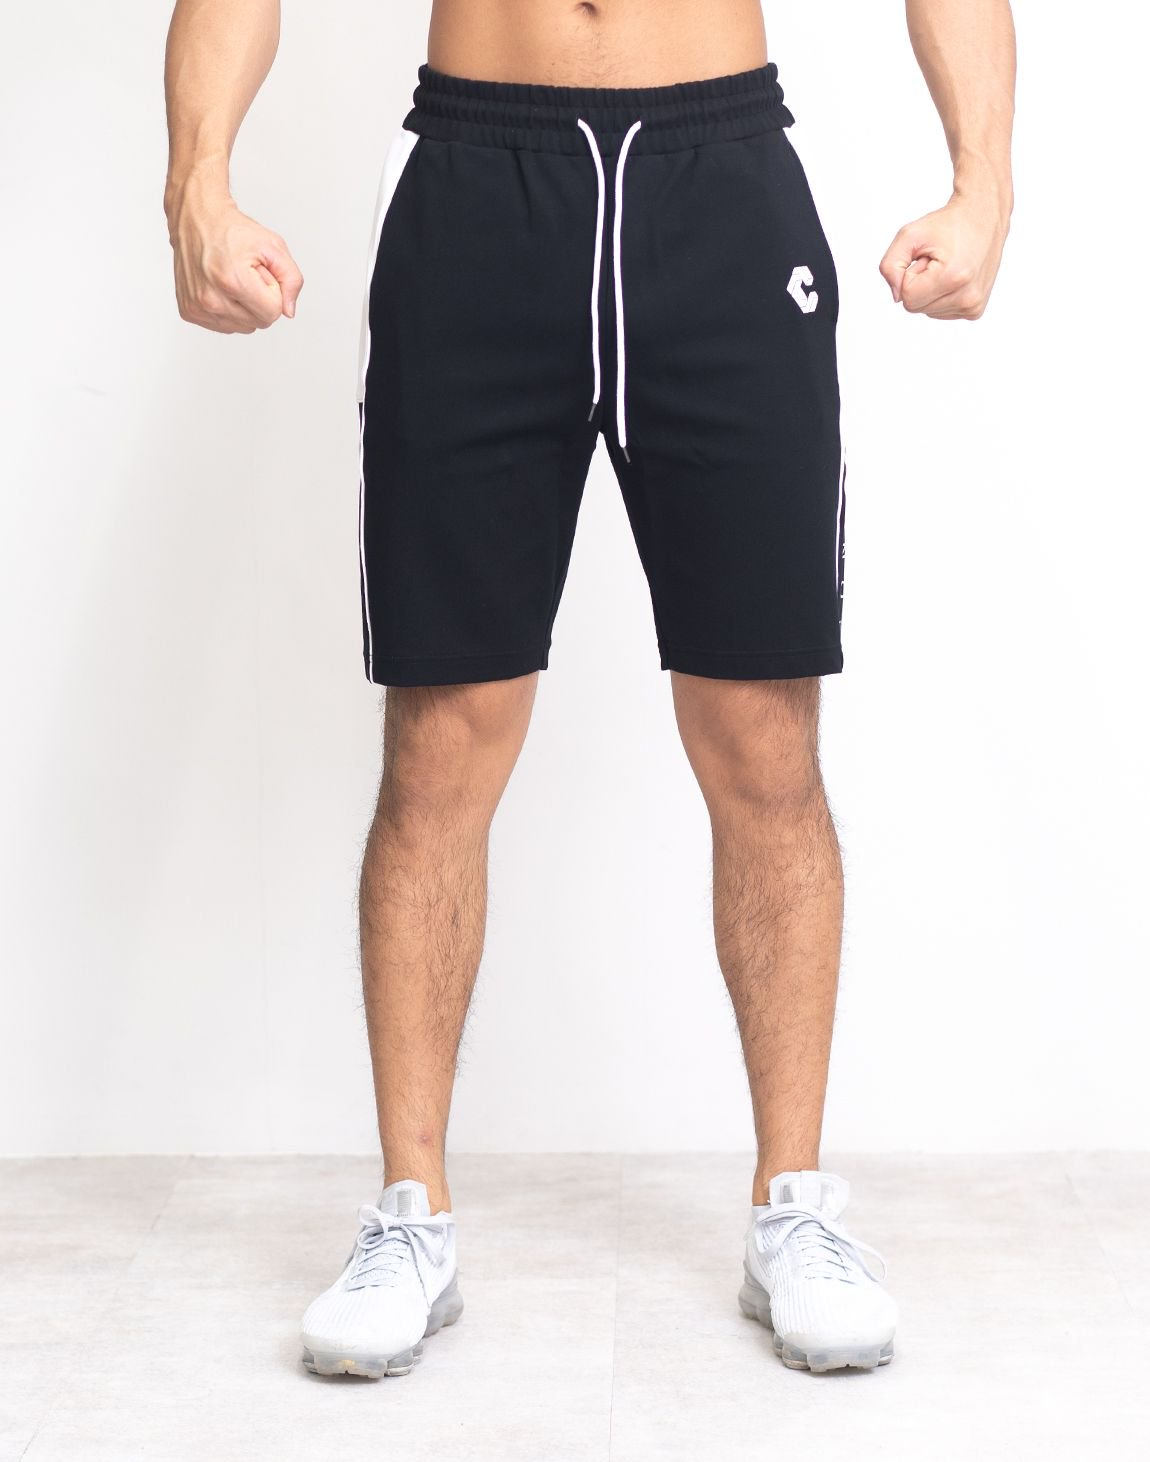 <img class='new_mark_img1' src='https://img.shop-pro.jp/img/new/icons55.gif' style='border:none;display:inline;margin:0px;padding:0px;width:auto;' />CRONOS SIDE LINE LOGO SHORTS【BLACK】